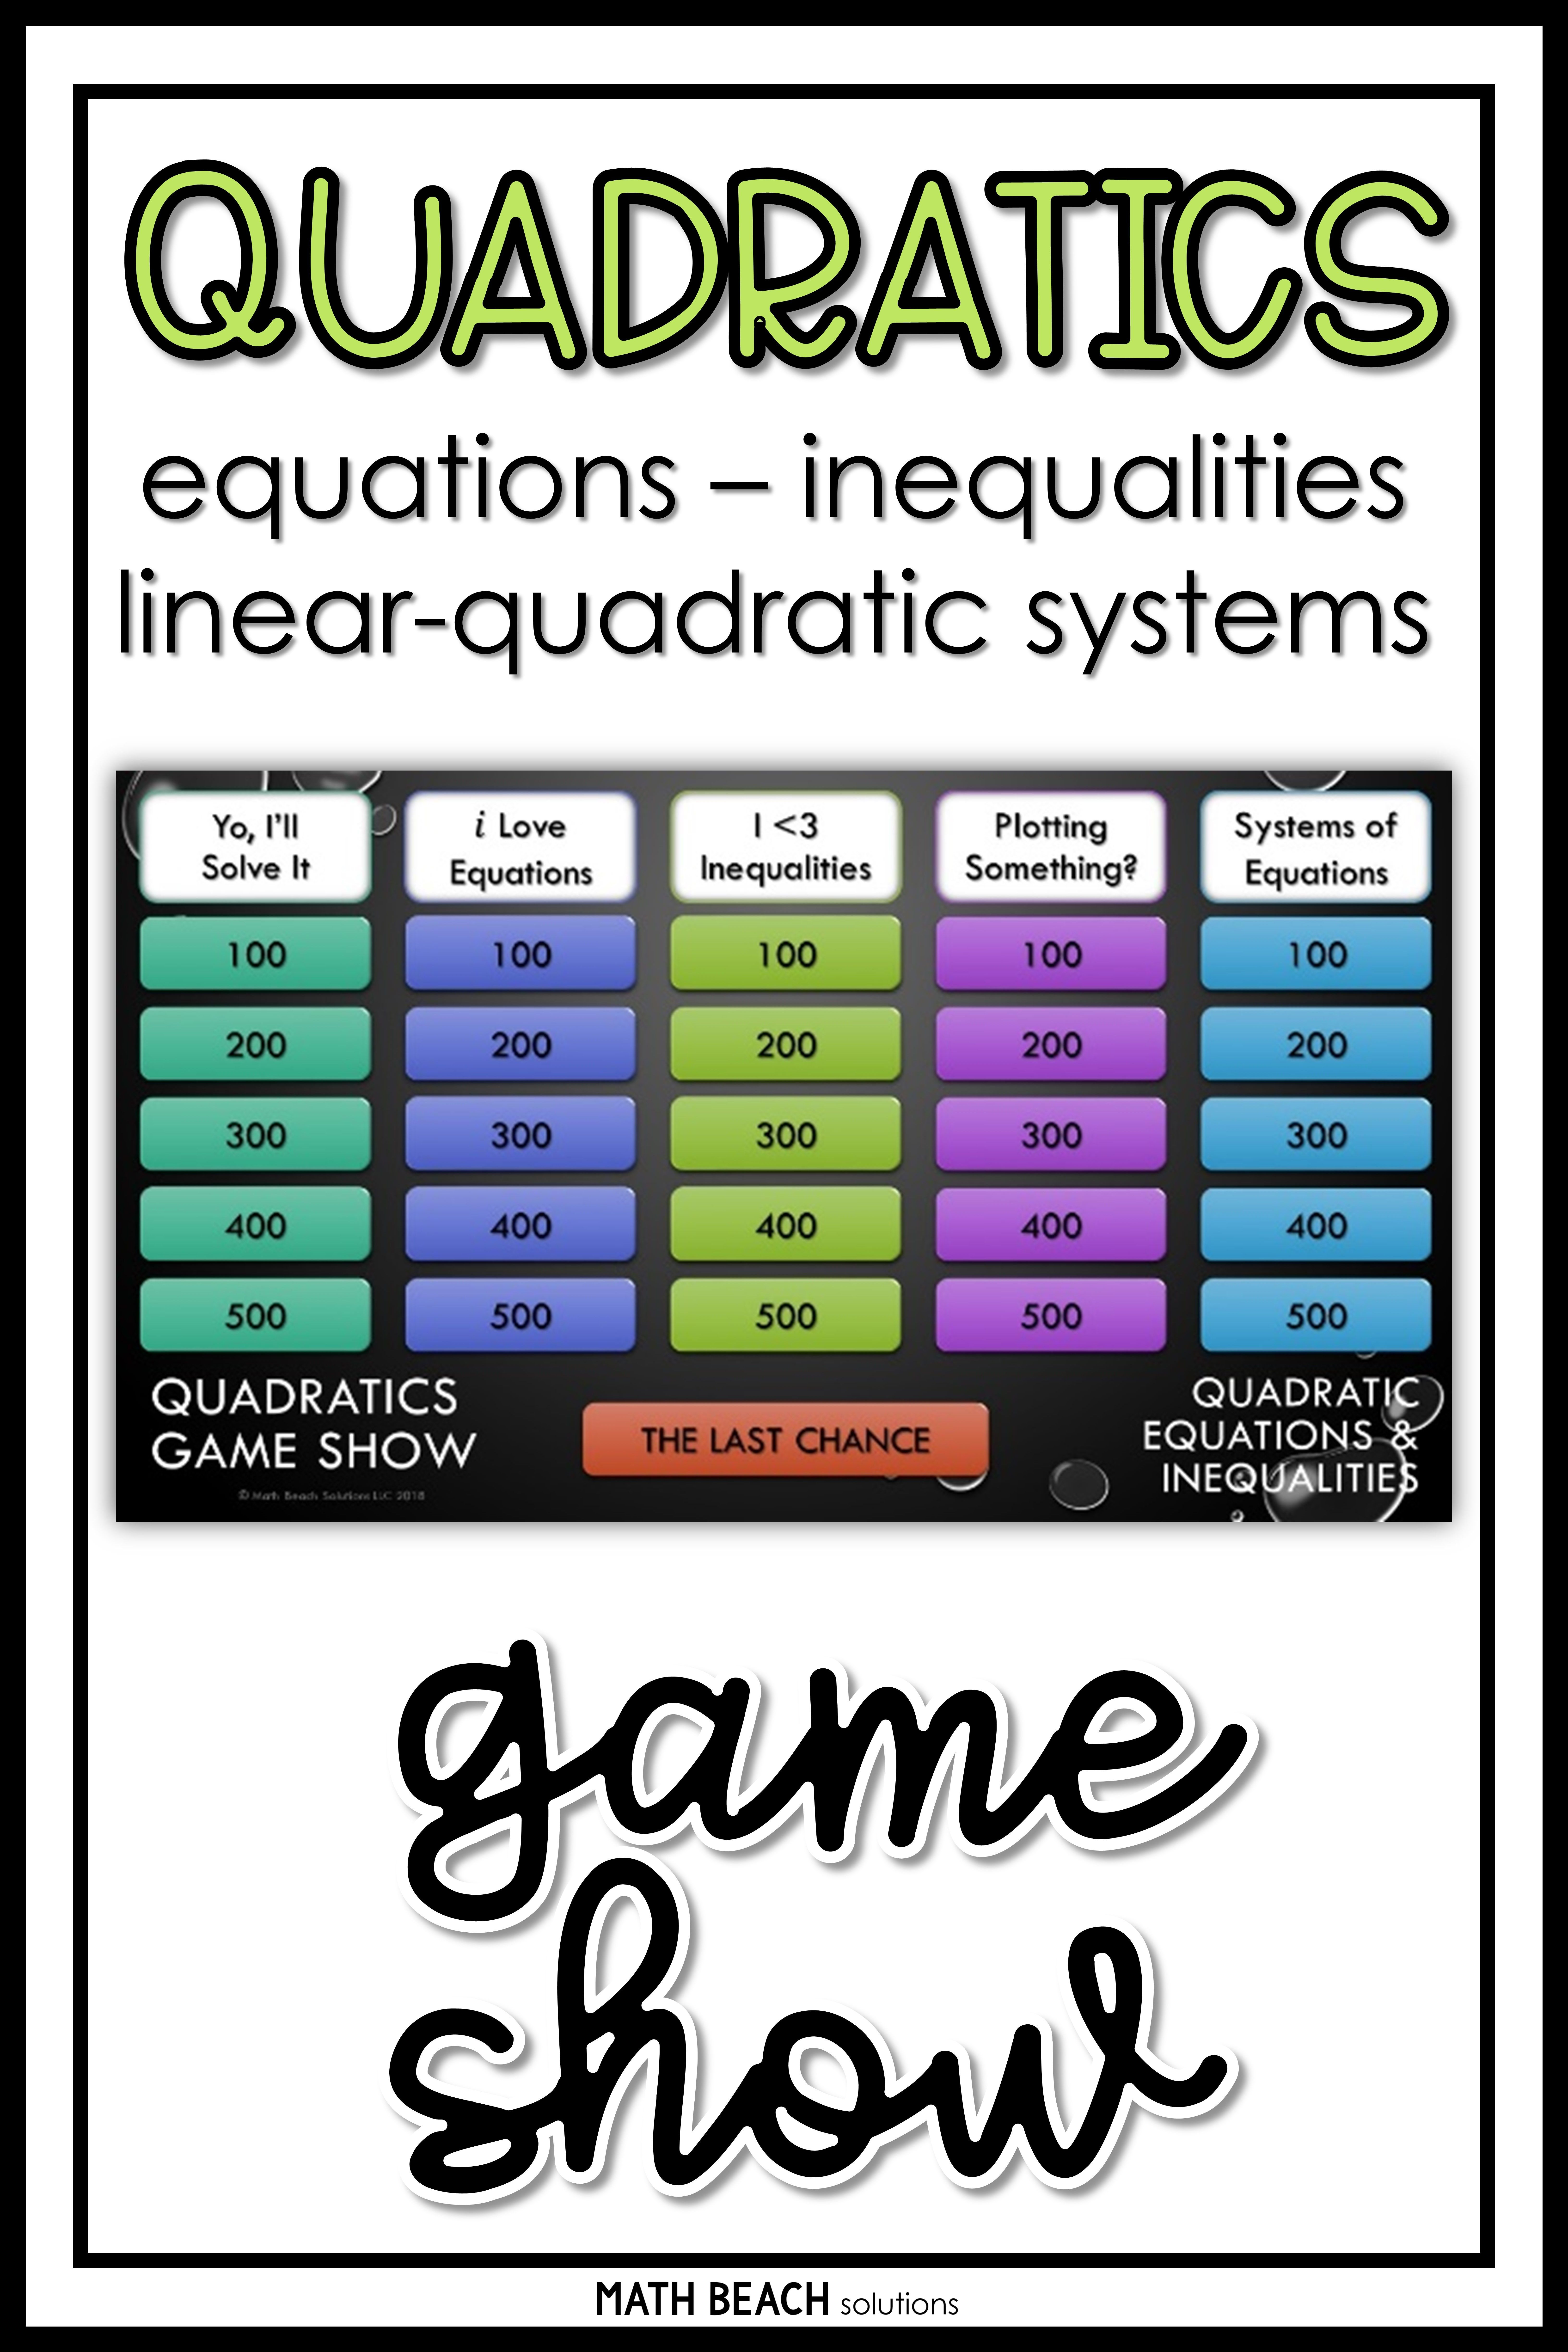 Game Shows Can Be A Great Way To Engage Algebra Students